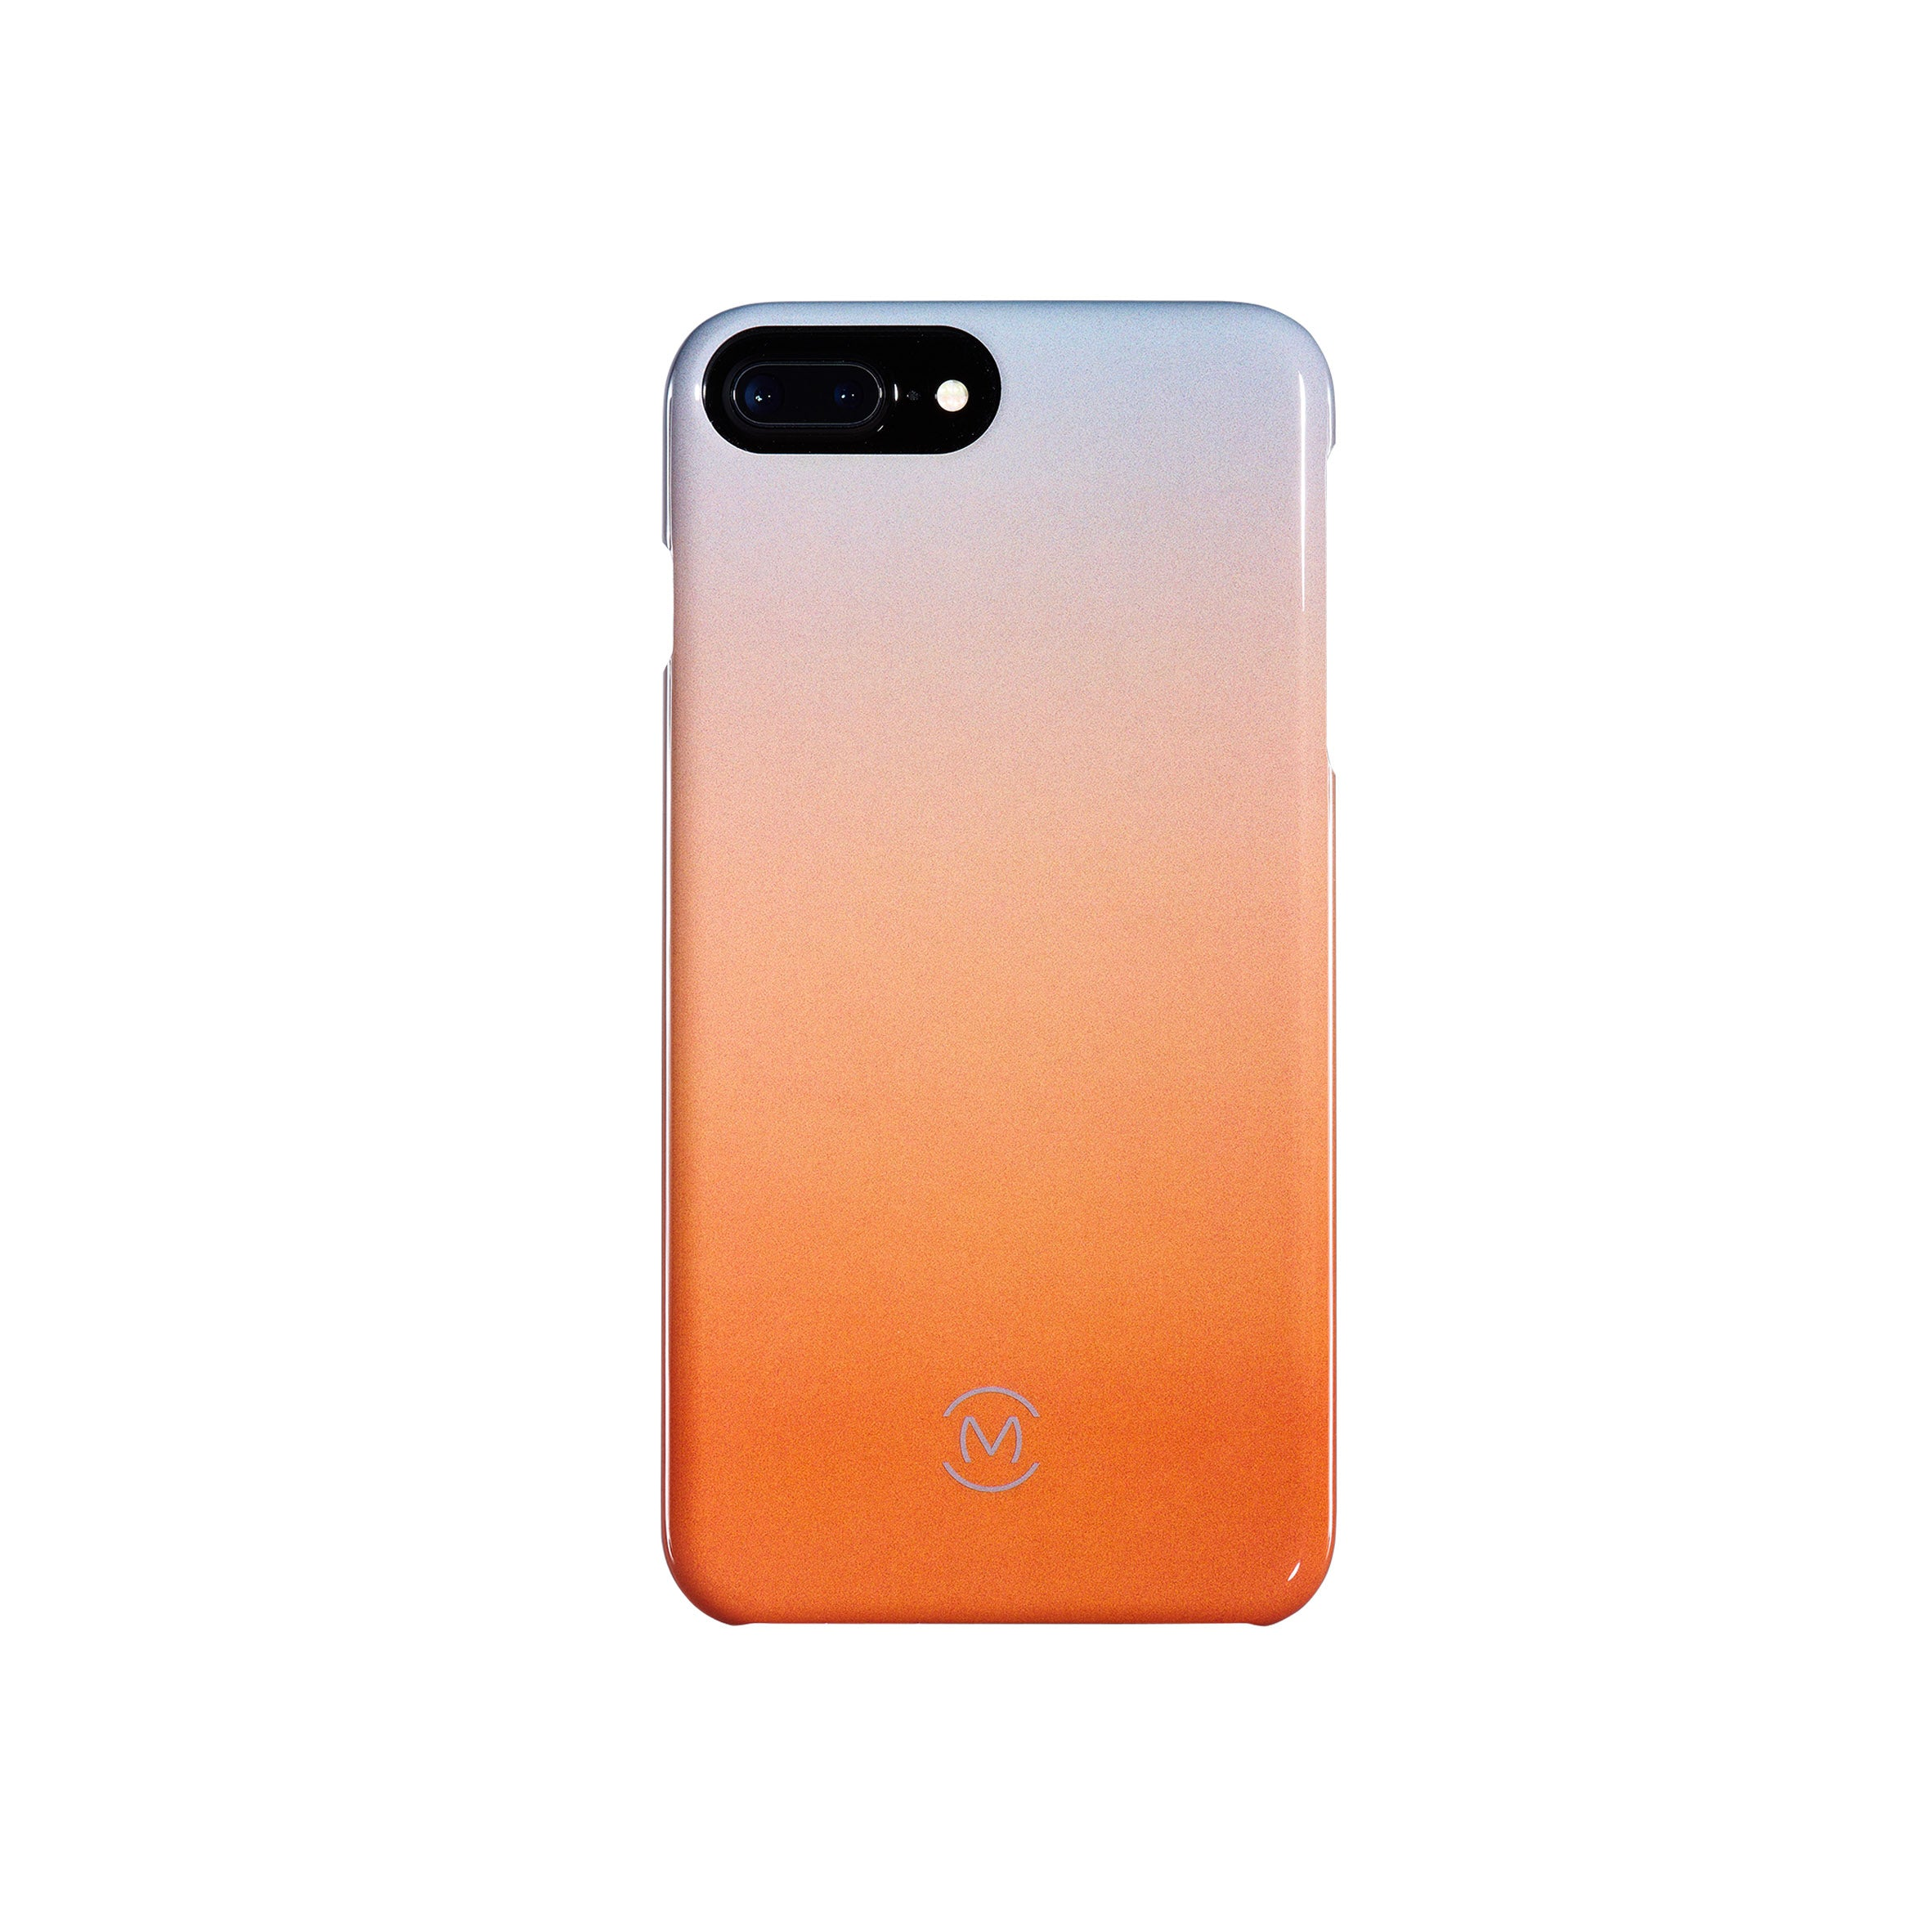 Gray-Orange Gradient Harvest Moon Recyclable Phone Case by Movement for iPhone 8 Plus, iPhone 7 Plus, iPhone 6s Plus, and iPhone 6 Plus (Back)